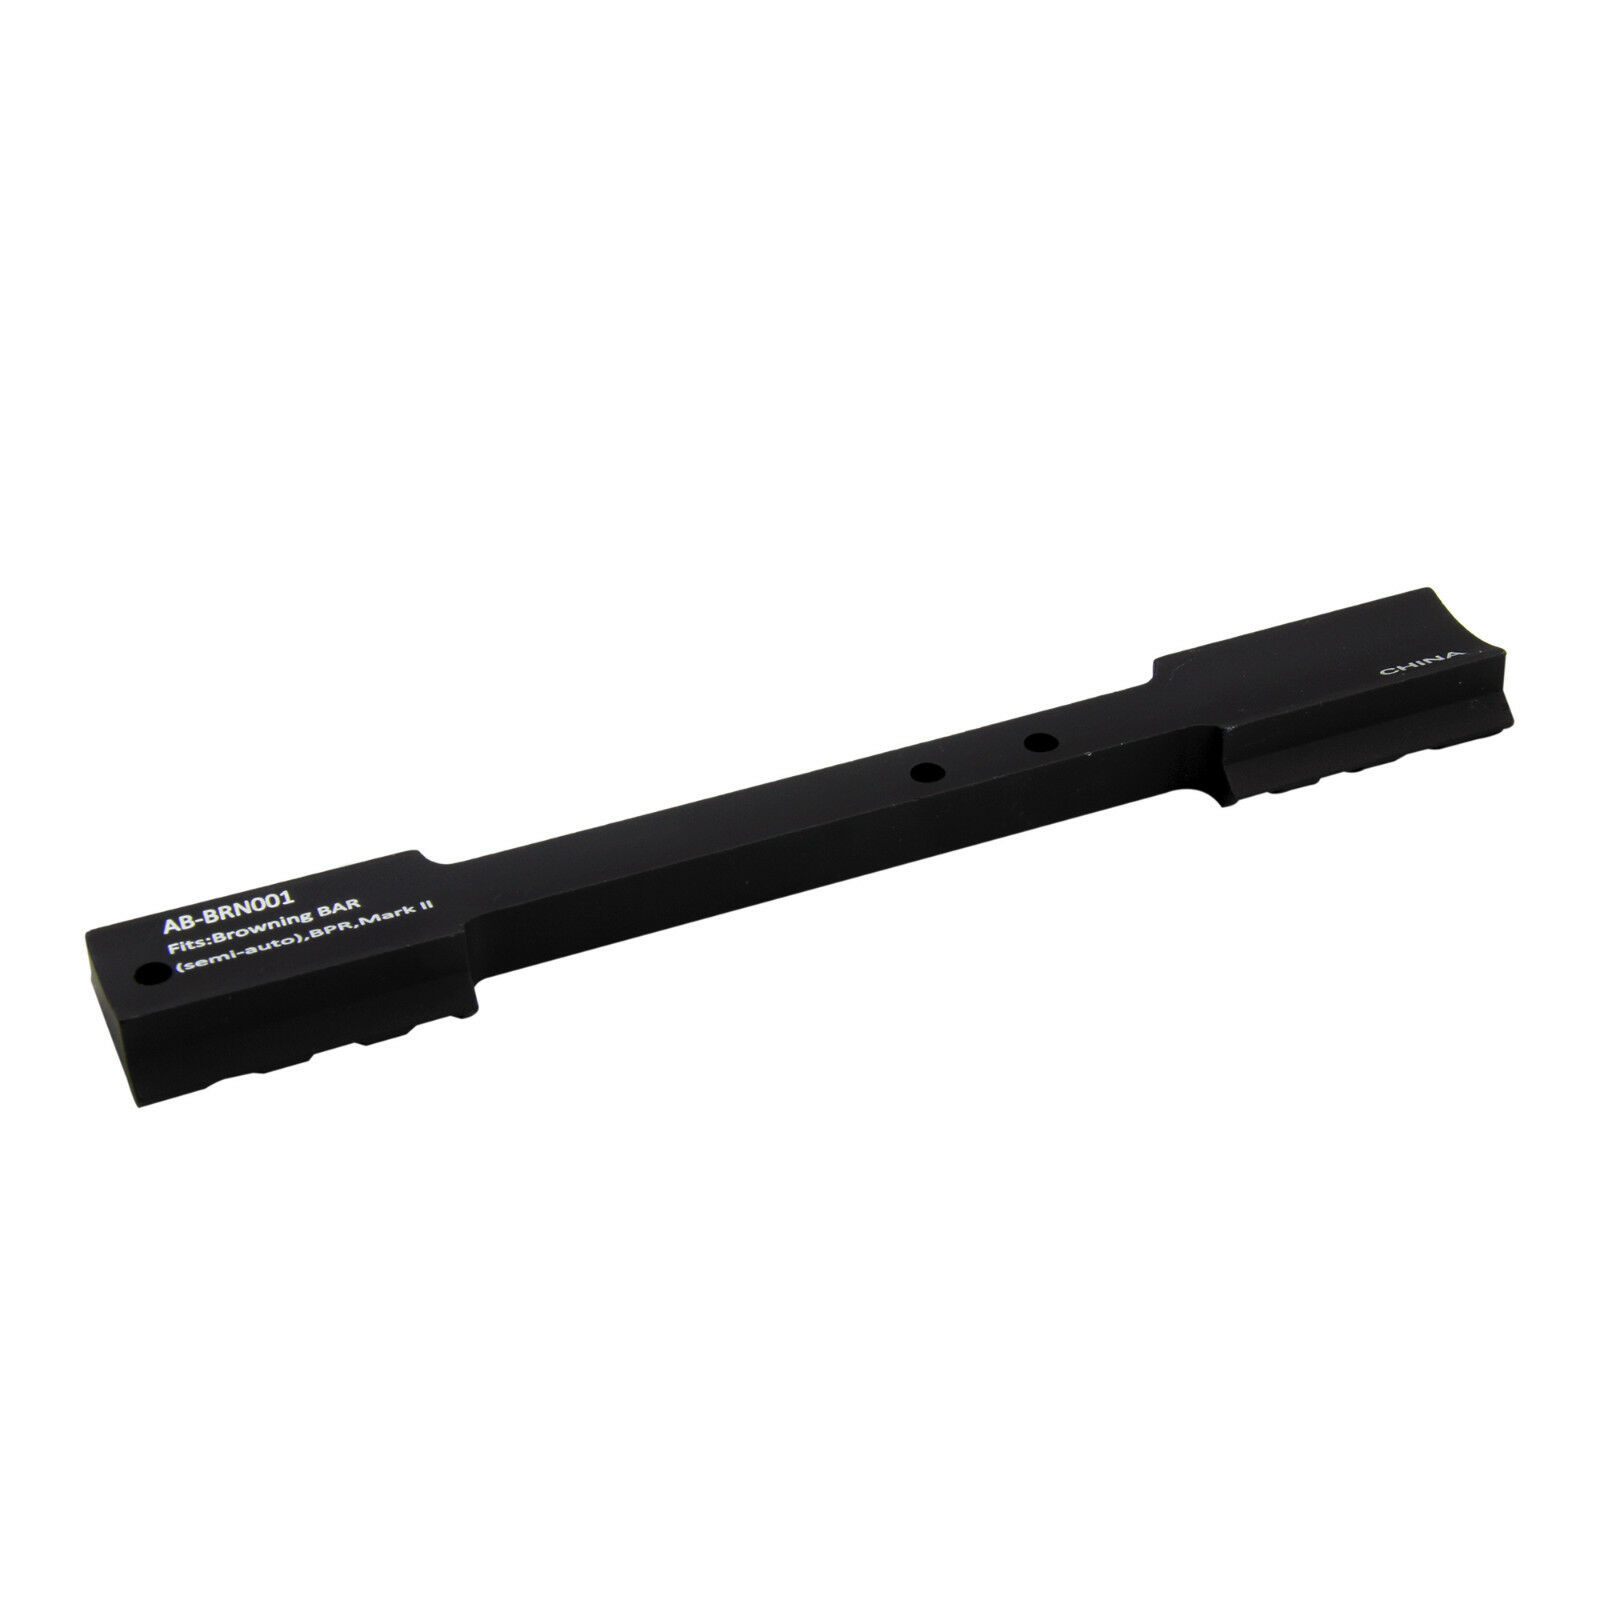 CCOP USA Picatinny Steel Scope BAR Mount Base for Brauning BAR Scope BPR Mark II PB-BRN001 99e817